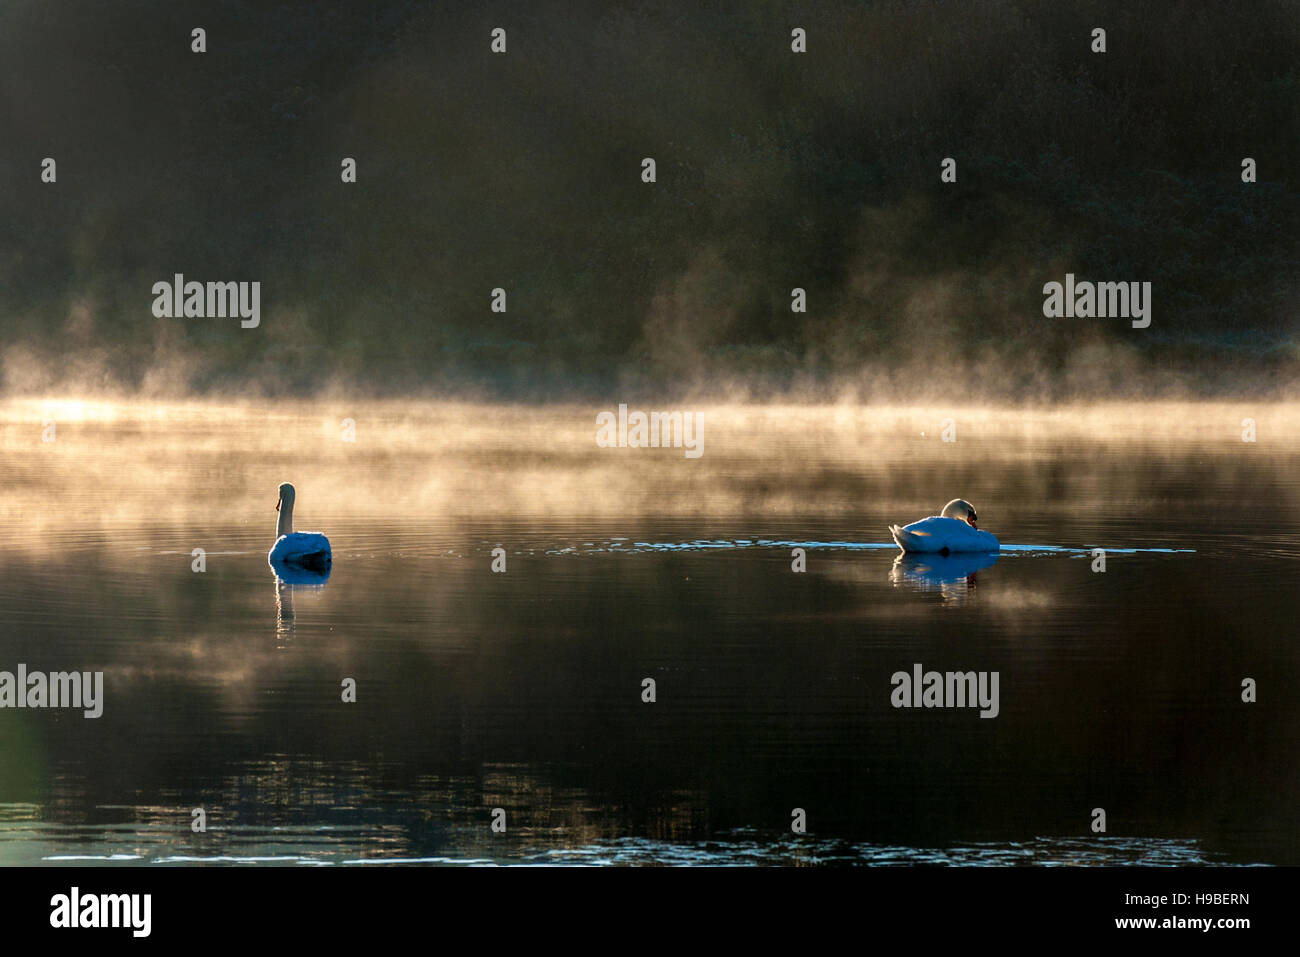 Ardara, County Donegal, Ireland weather. 21st November 2016. Swans on Lake Shanaghan on a cold, crisp winter morning. - Stock Image